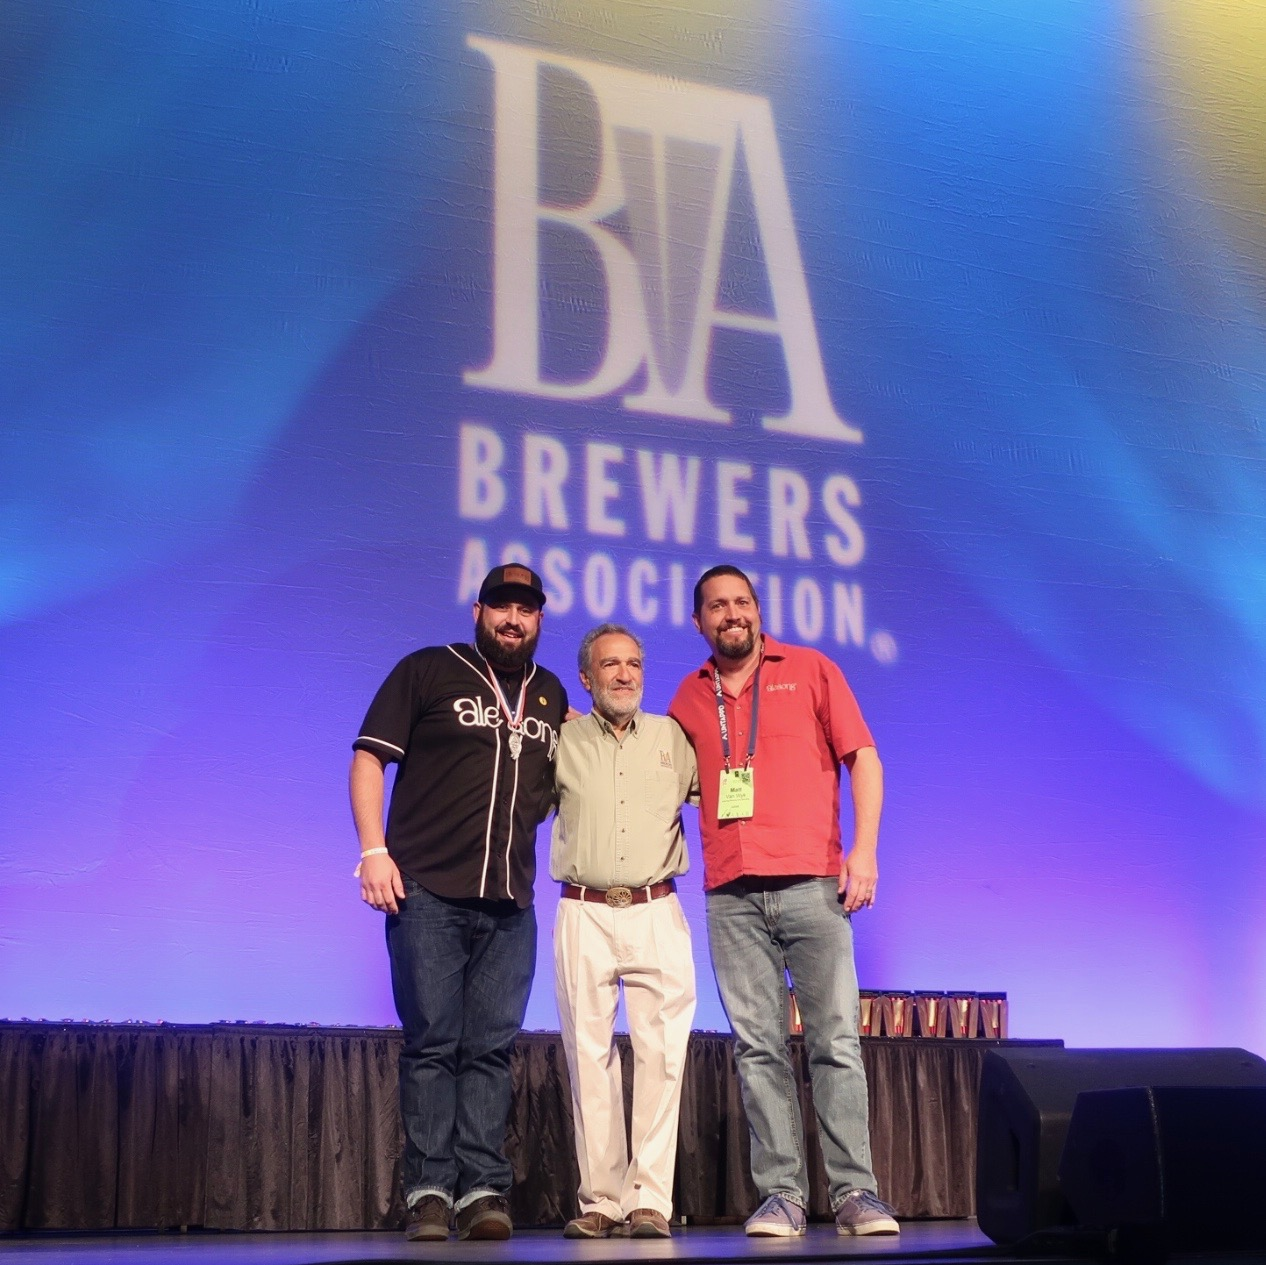 Alesong Brewing & Blending on stage accepting its first GABF Medal at the 2018 Great American Beer Festival.